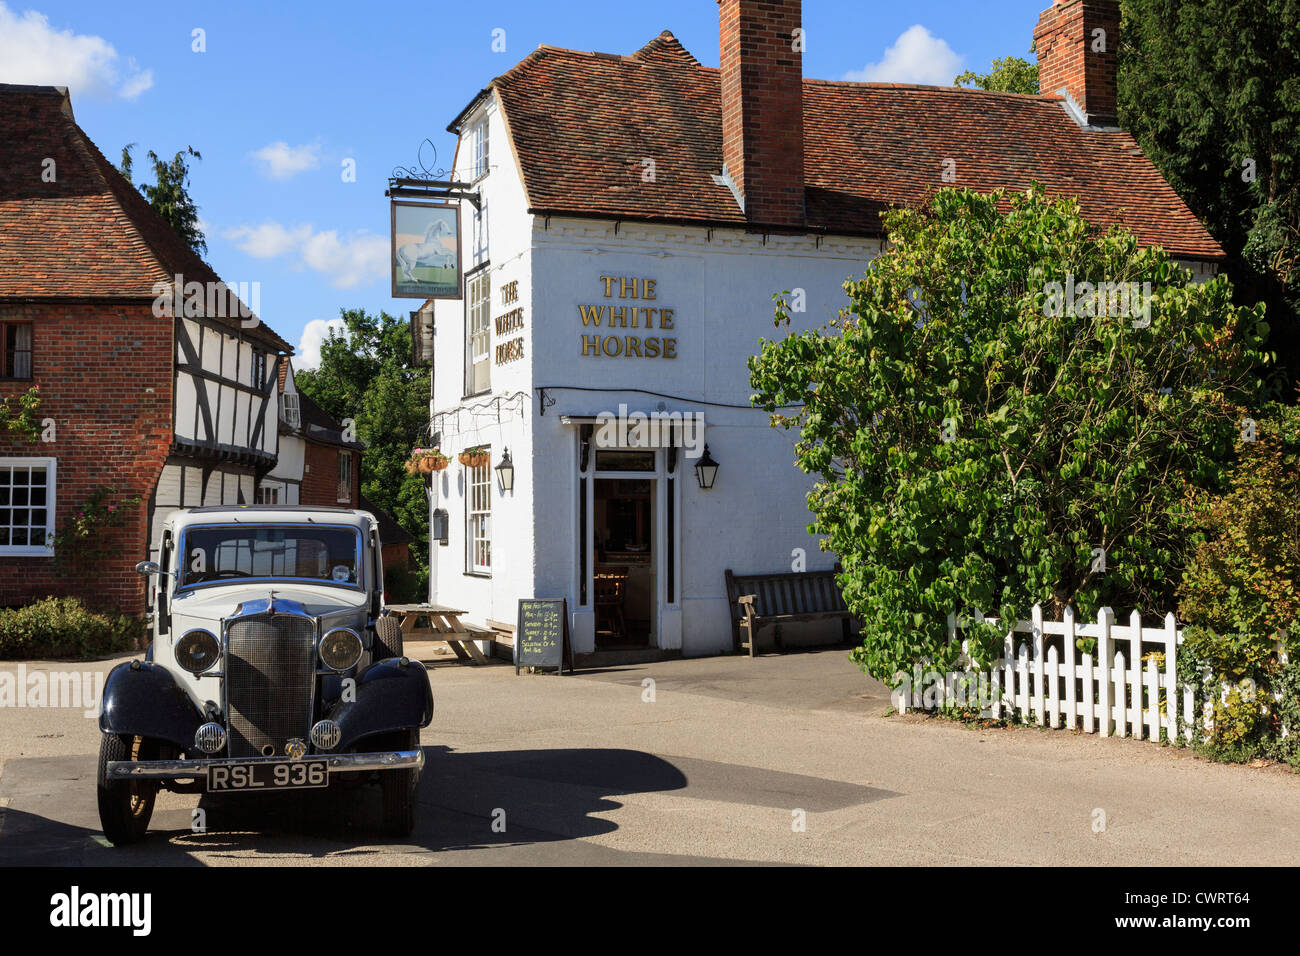 Vintage Daimler car by the White Horse pub in historic village square in Chilham, Kent, England, UK, Britain - Stock Image